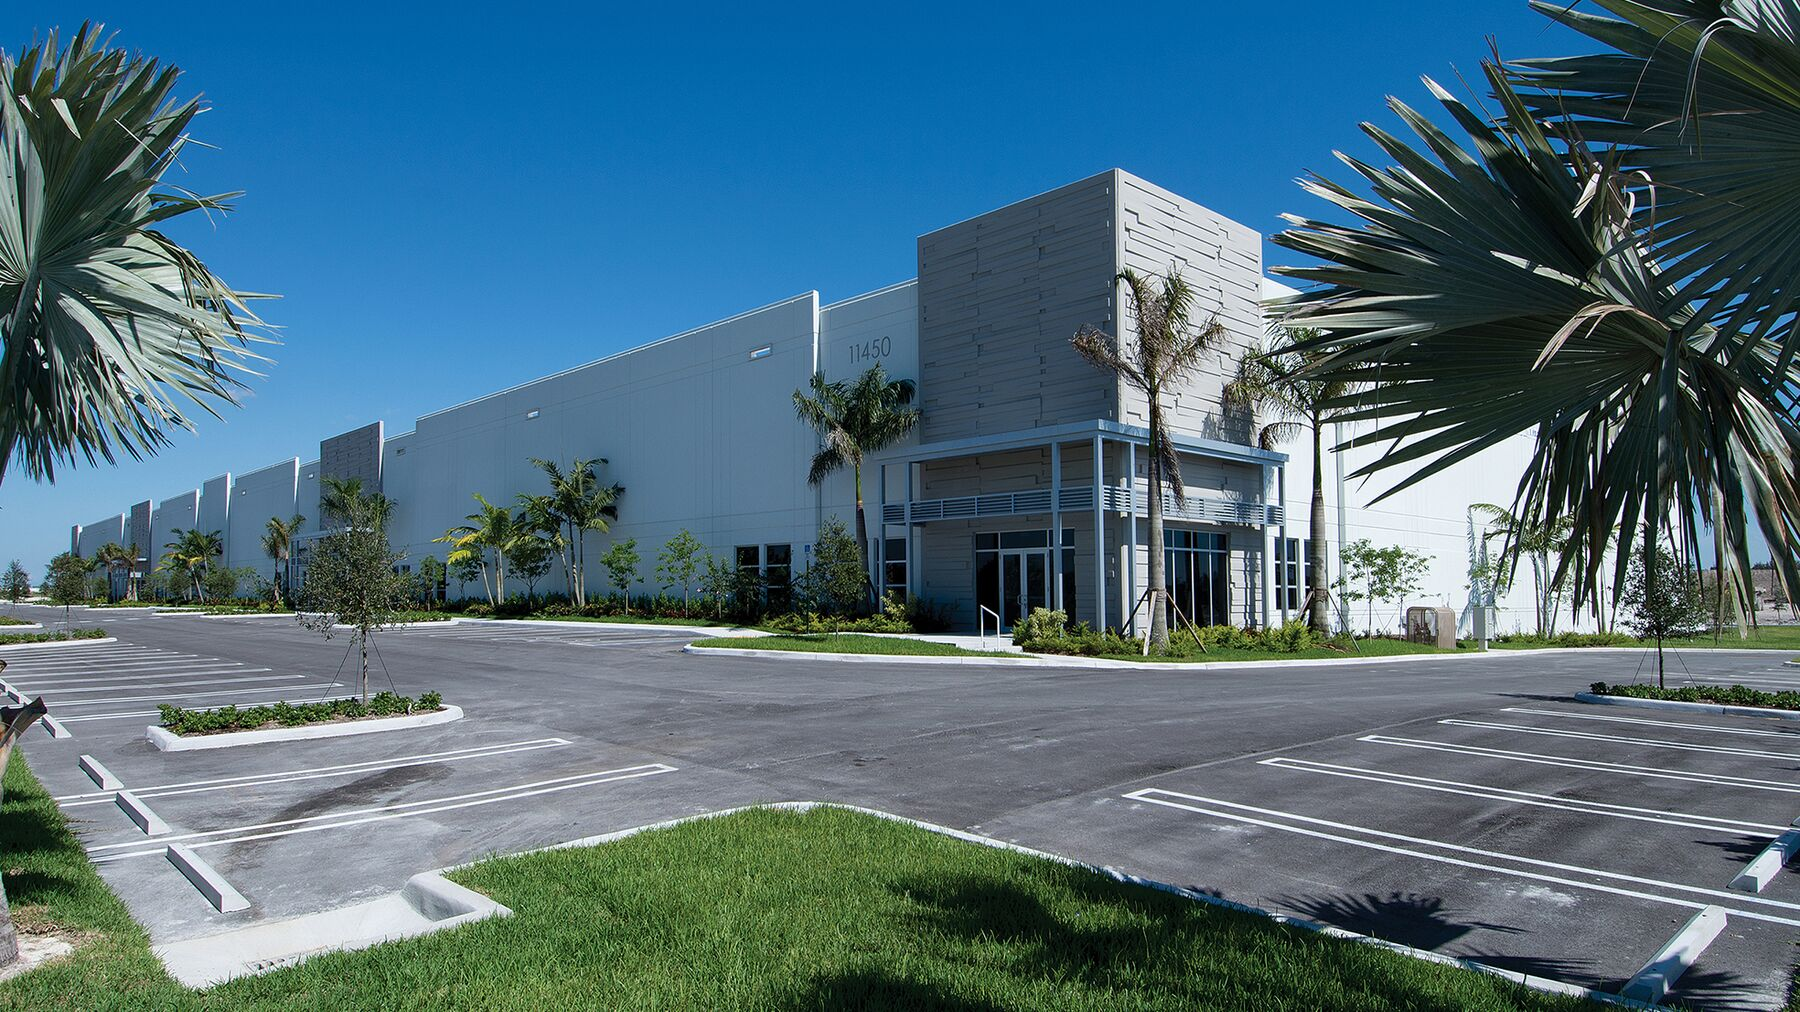 DPM-Prologis-Miami-International-Tradeport-2-Property-Photos.jpg